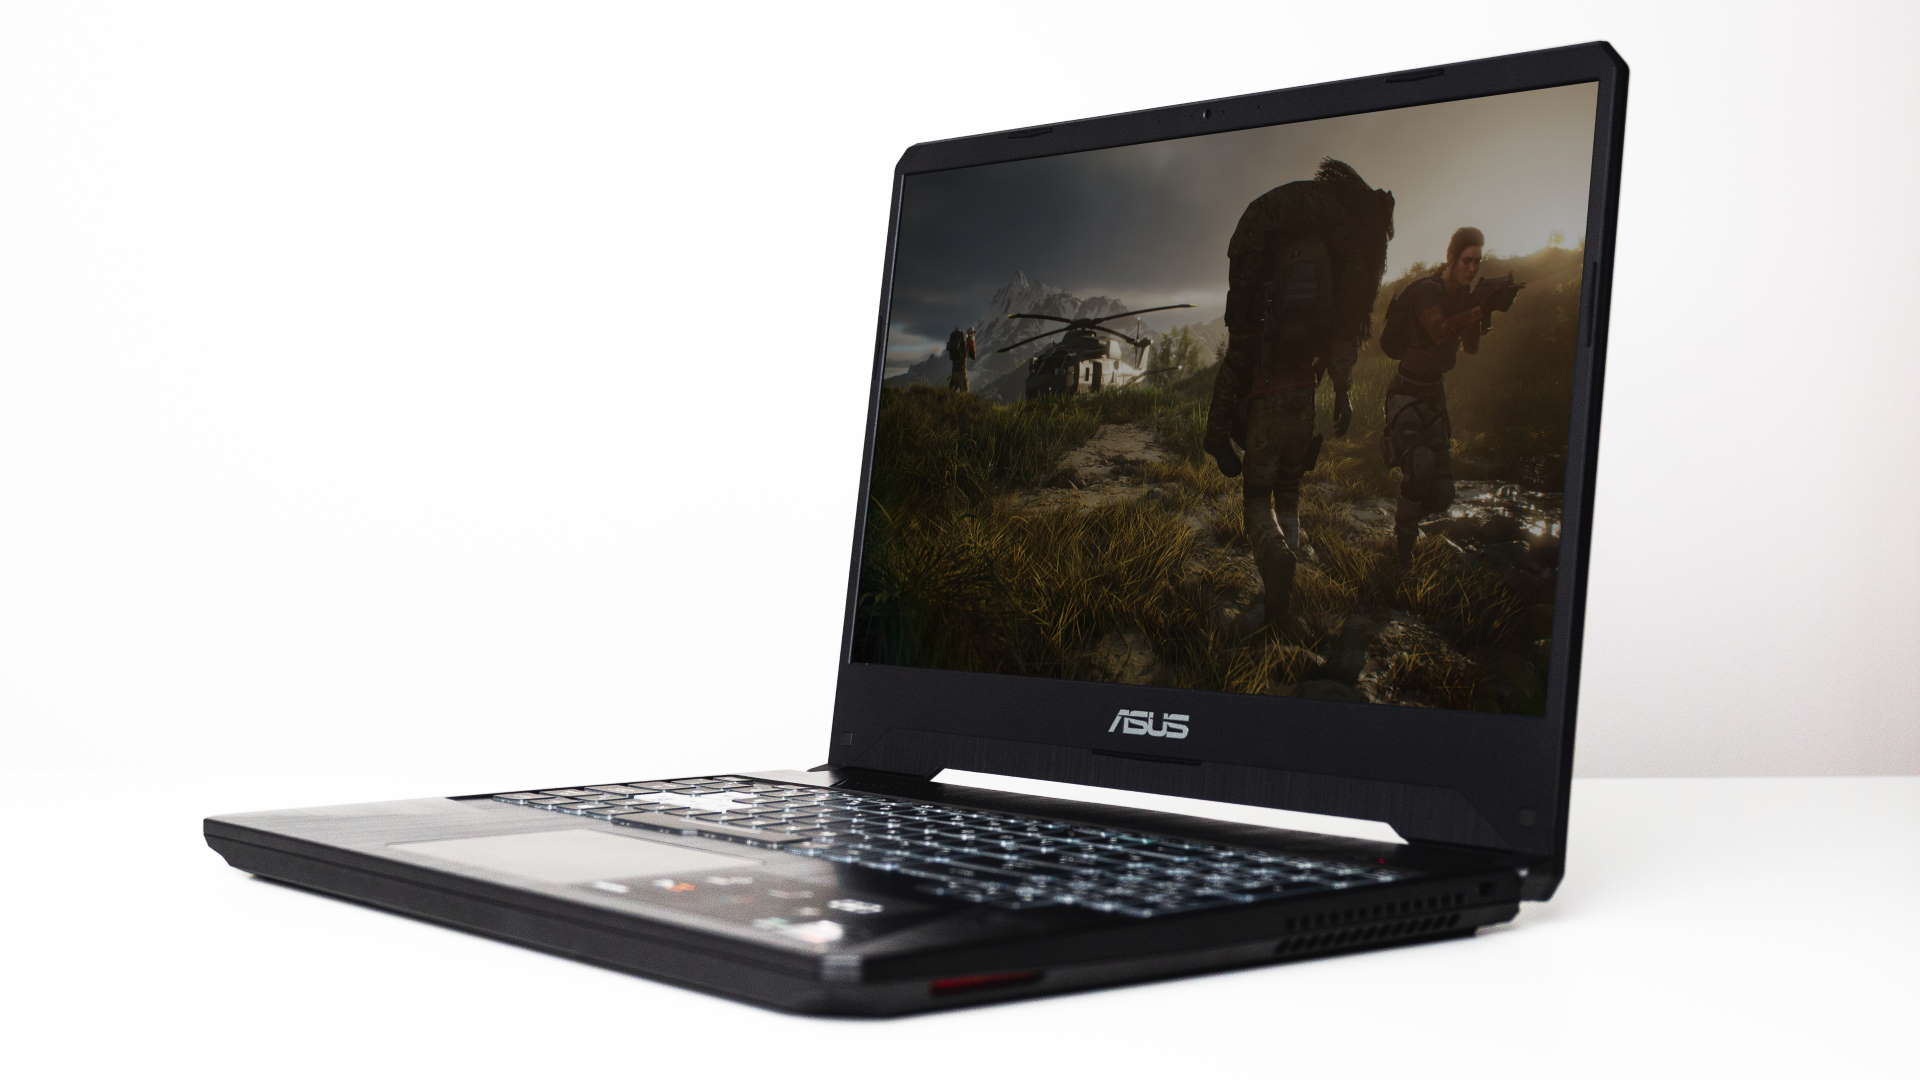 Asus TUF FX505DV review: Nvidia and AMD GPUs in all the right places